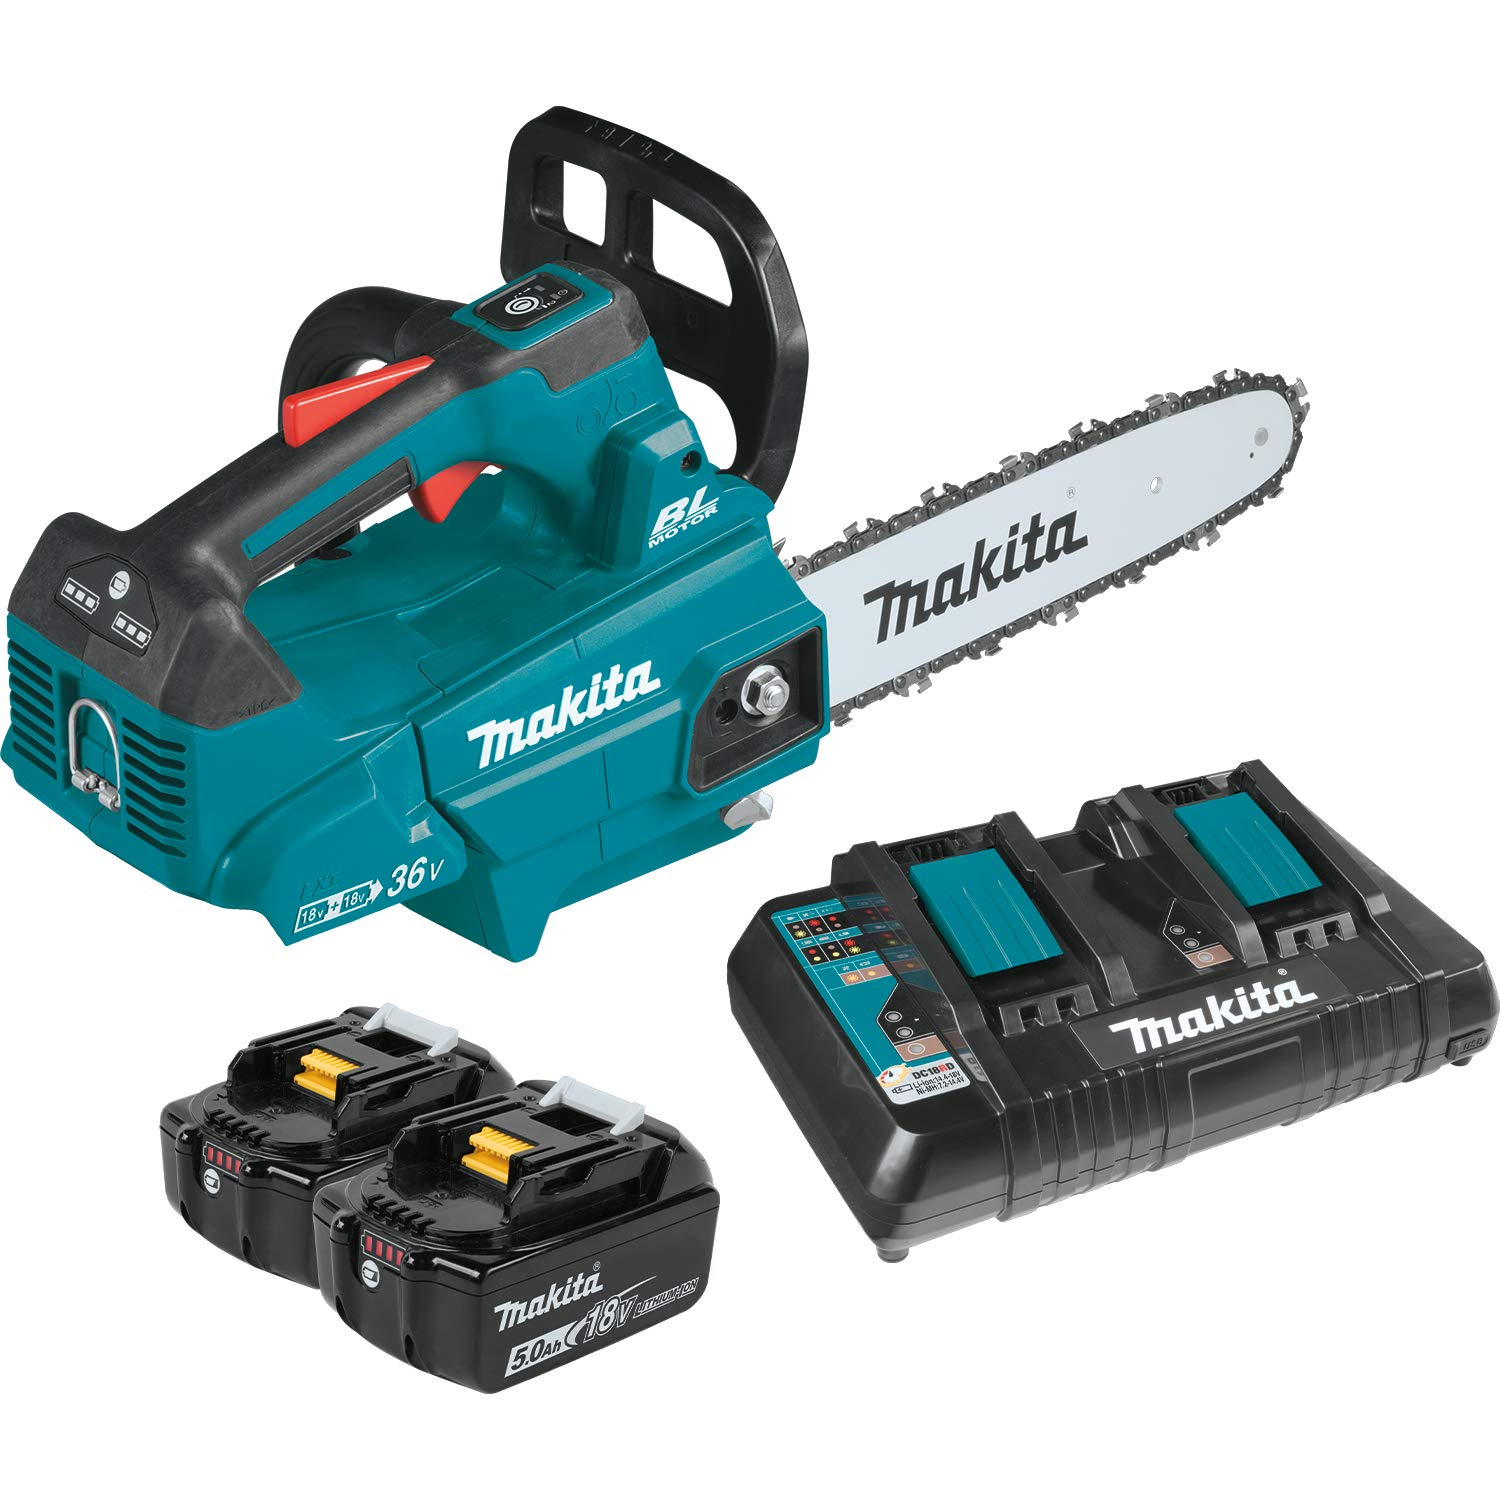 Makita XCU08PT Lithium-Ion Brushless Cordless 5.0Ah 18V X2 36V LXT 14 Top Handle Chain Saw Kit, Teal